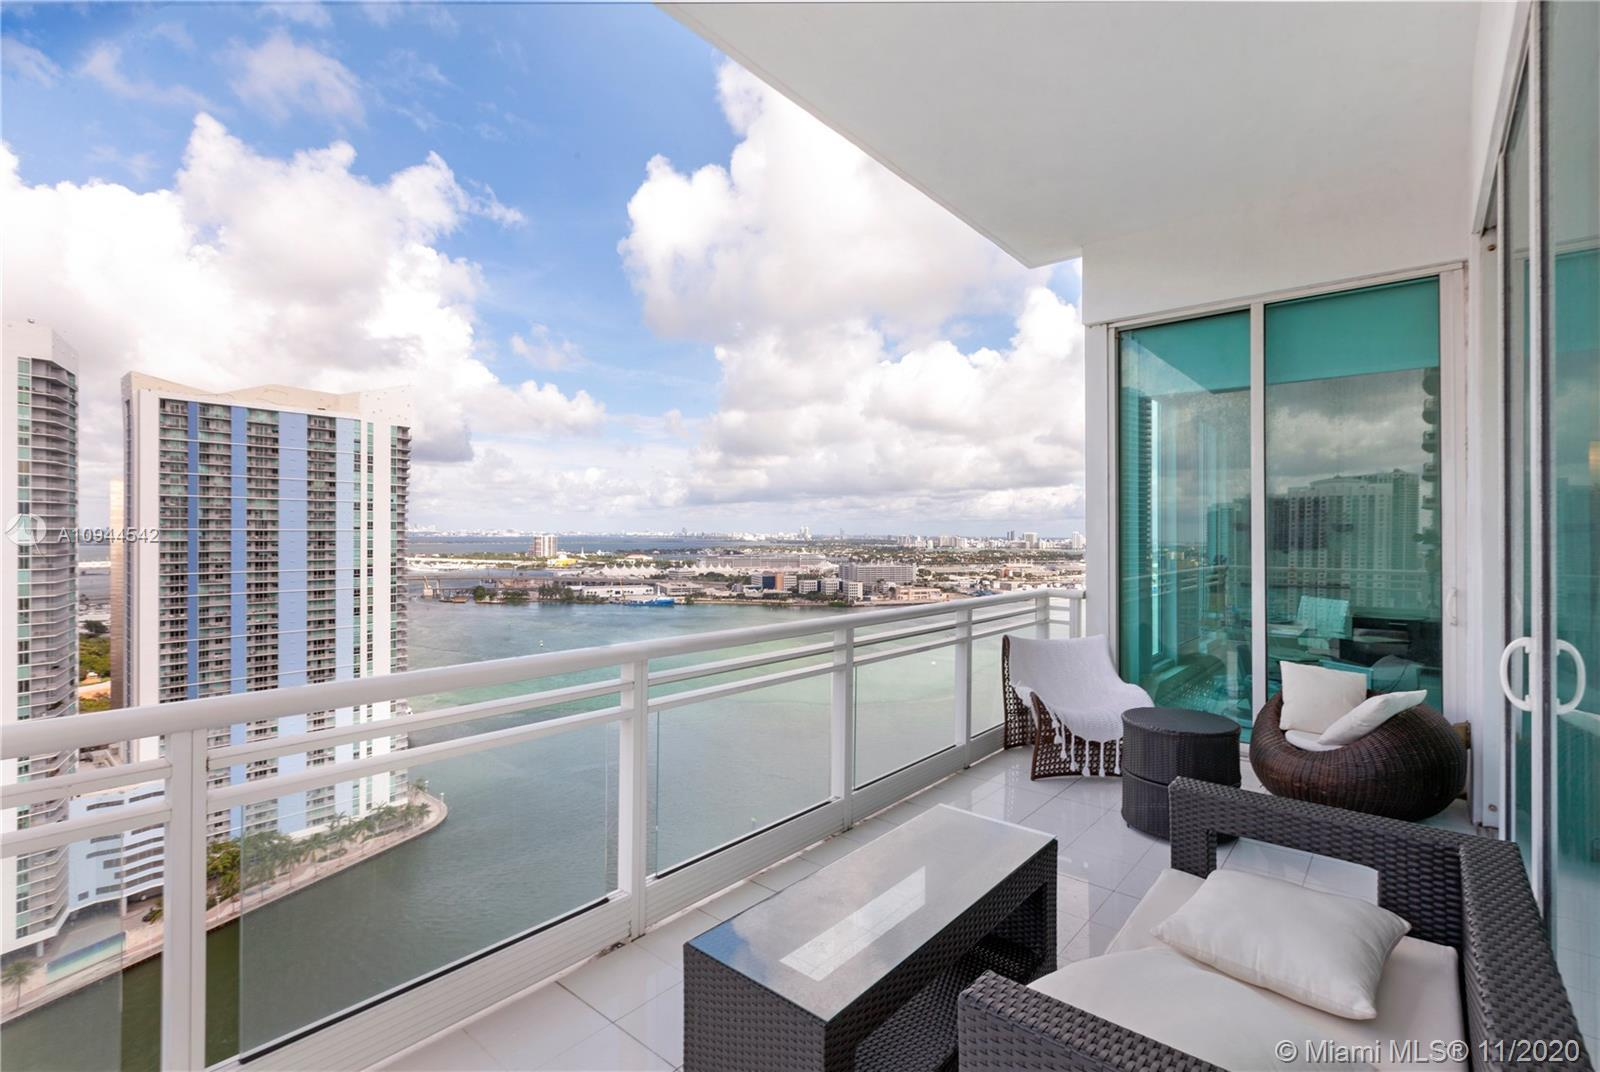 Spectacular views furnished turnkey unit at ASIA condo in Brickell key. Three bedroom & 3.5 bath cor